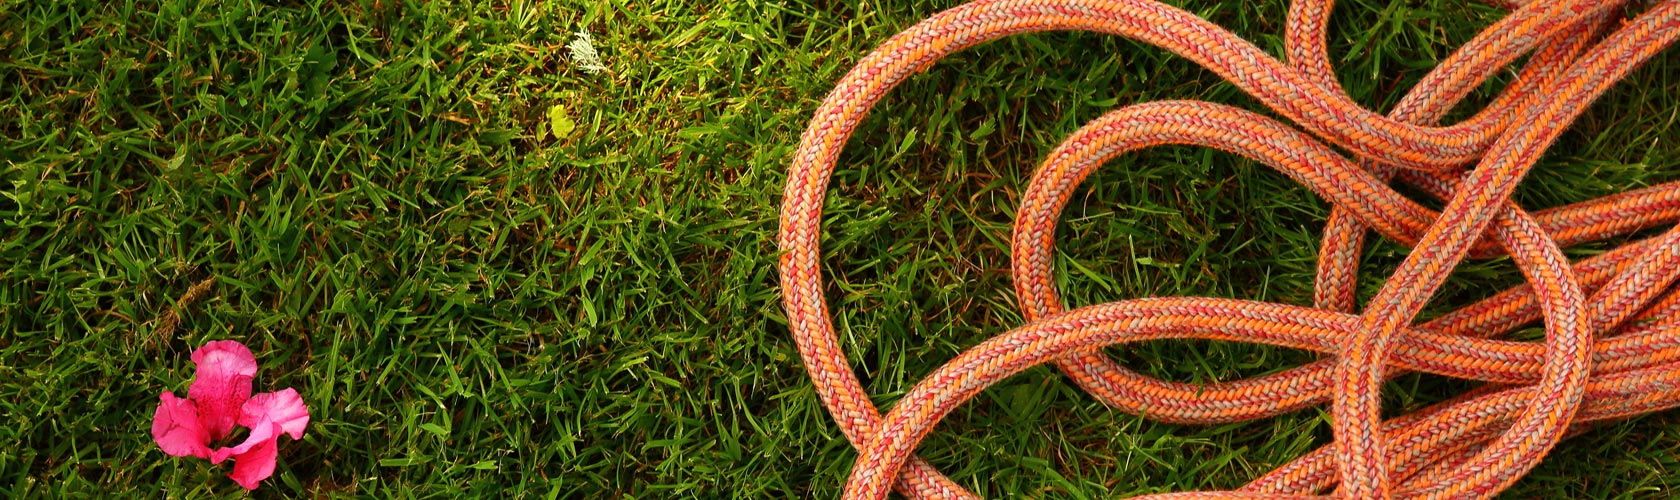 climbing ropes in grass